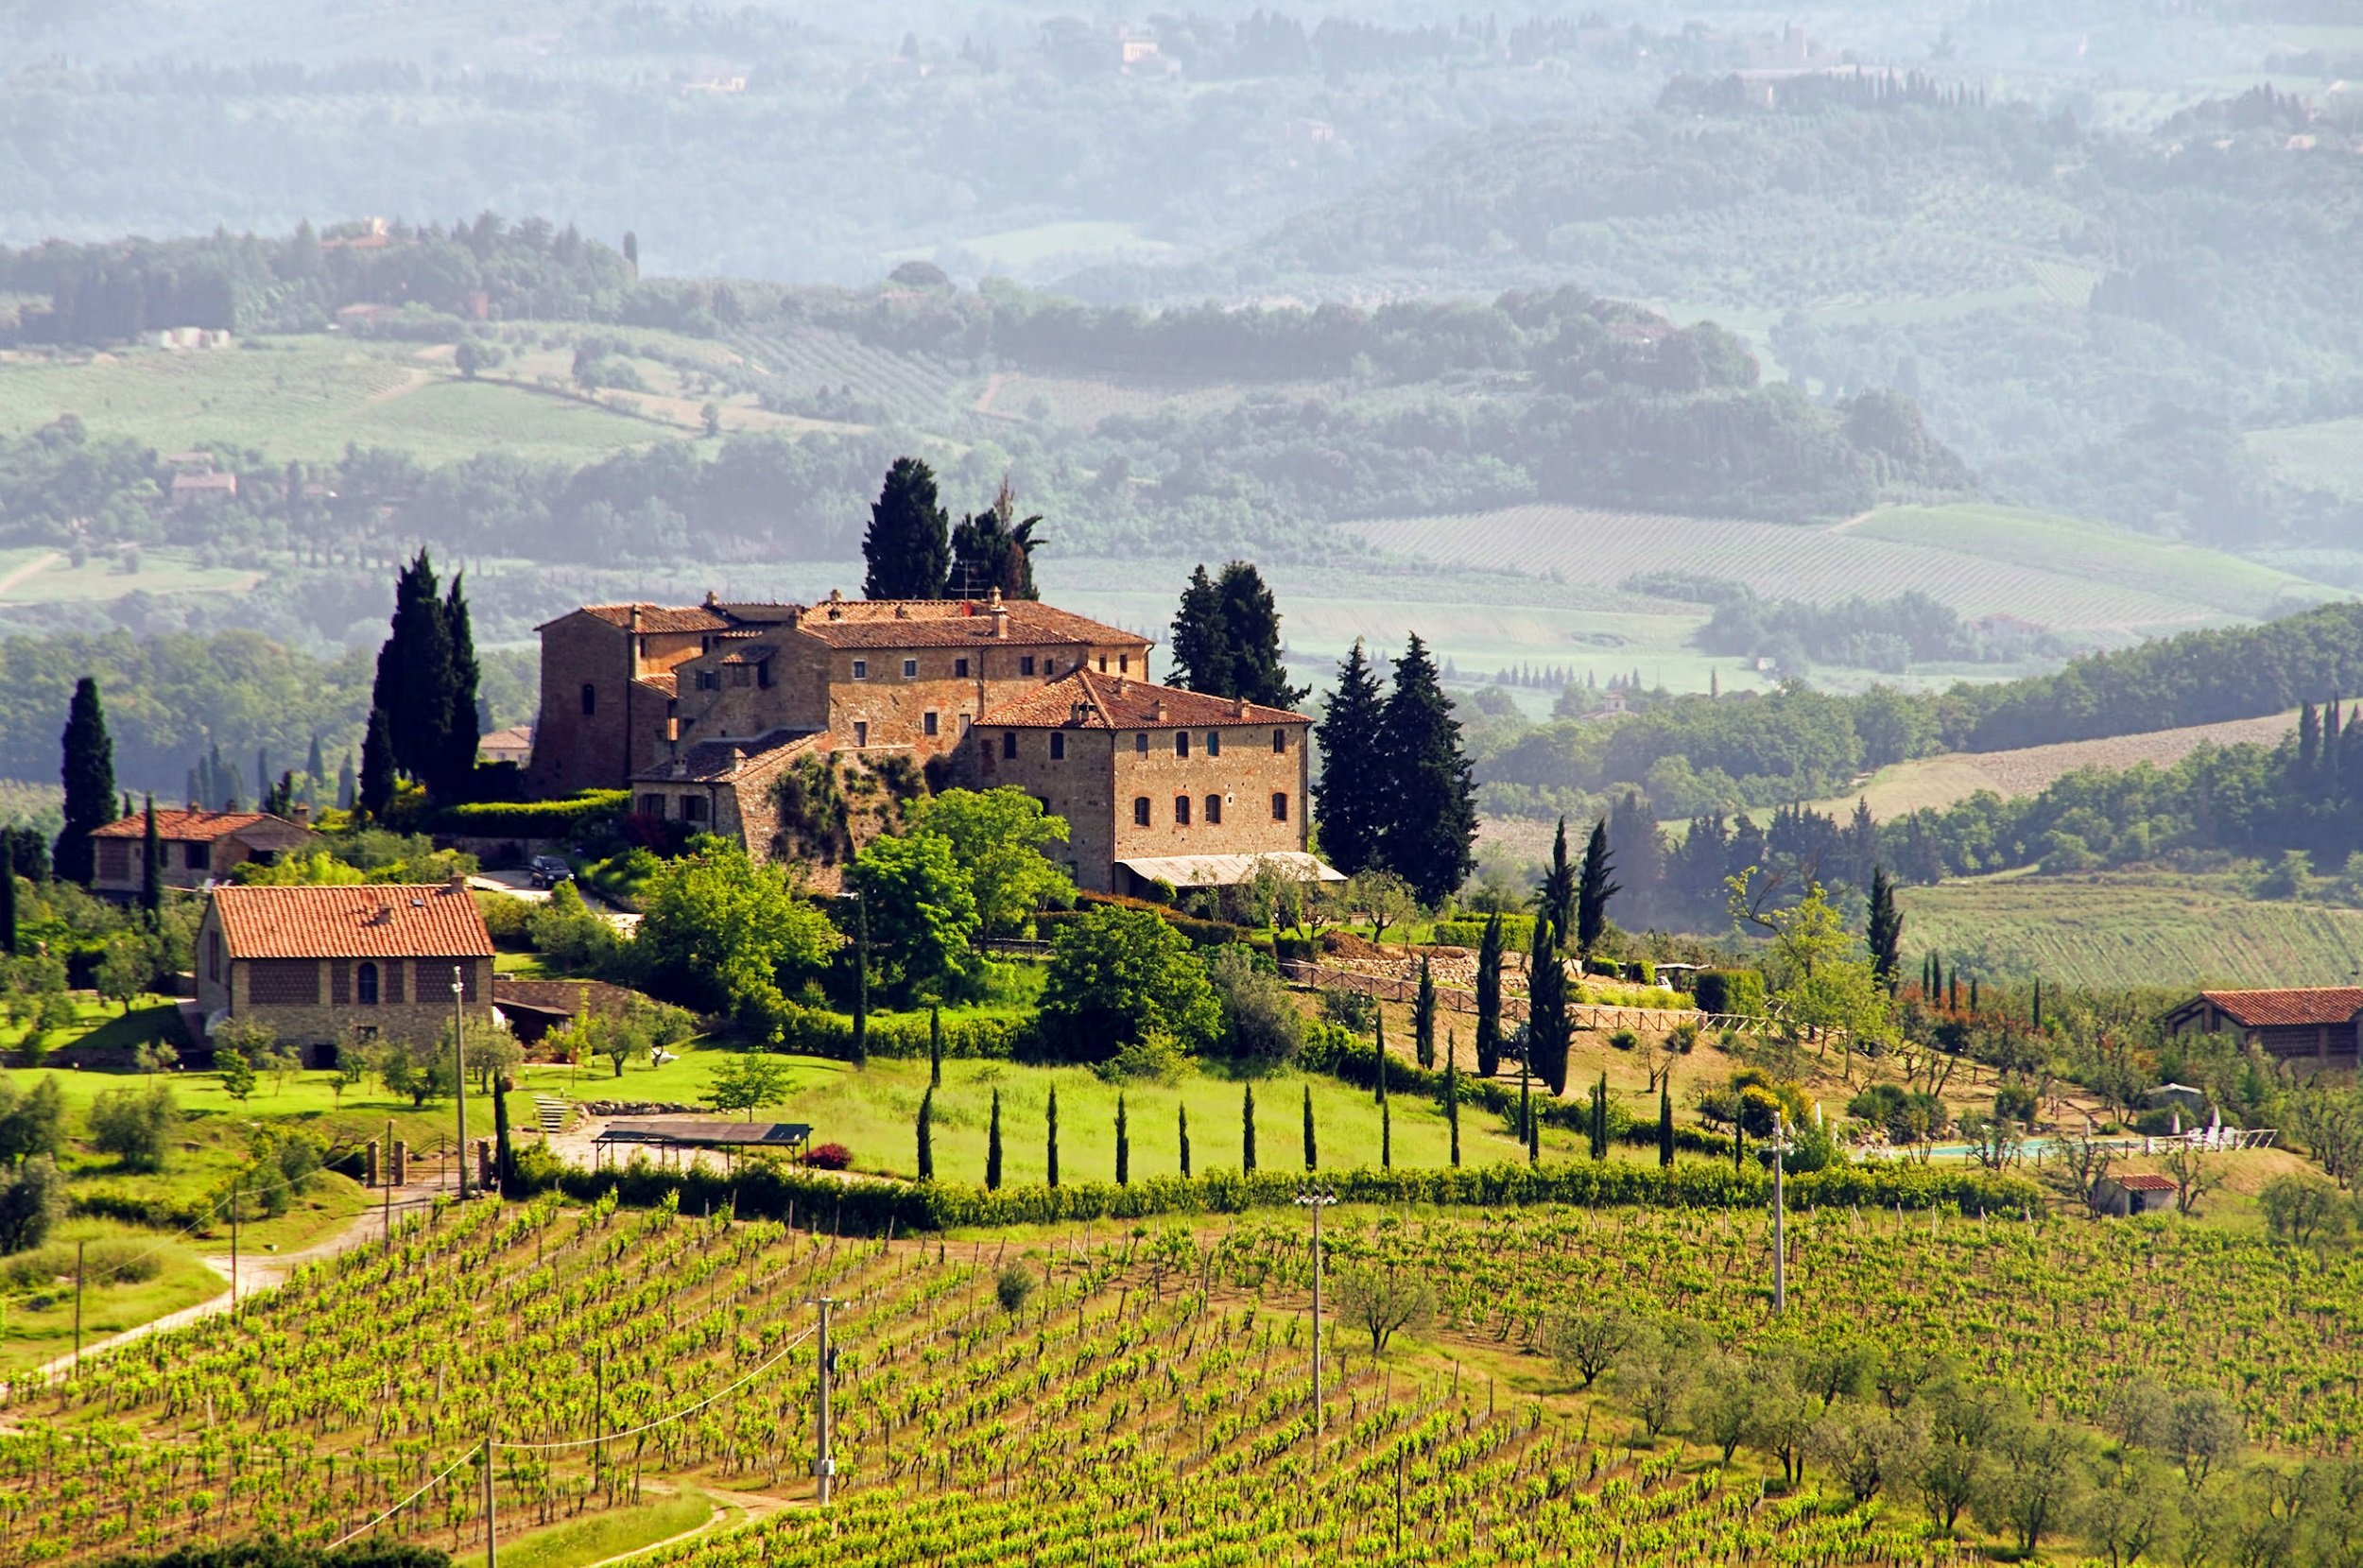 Take A Tuscan Cooking Class On Our Alternative Florence & Tuscany 6 Day Tour Package